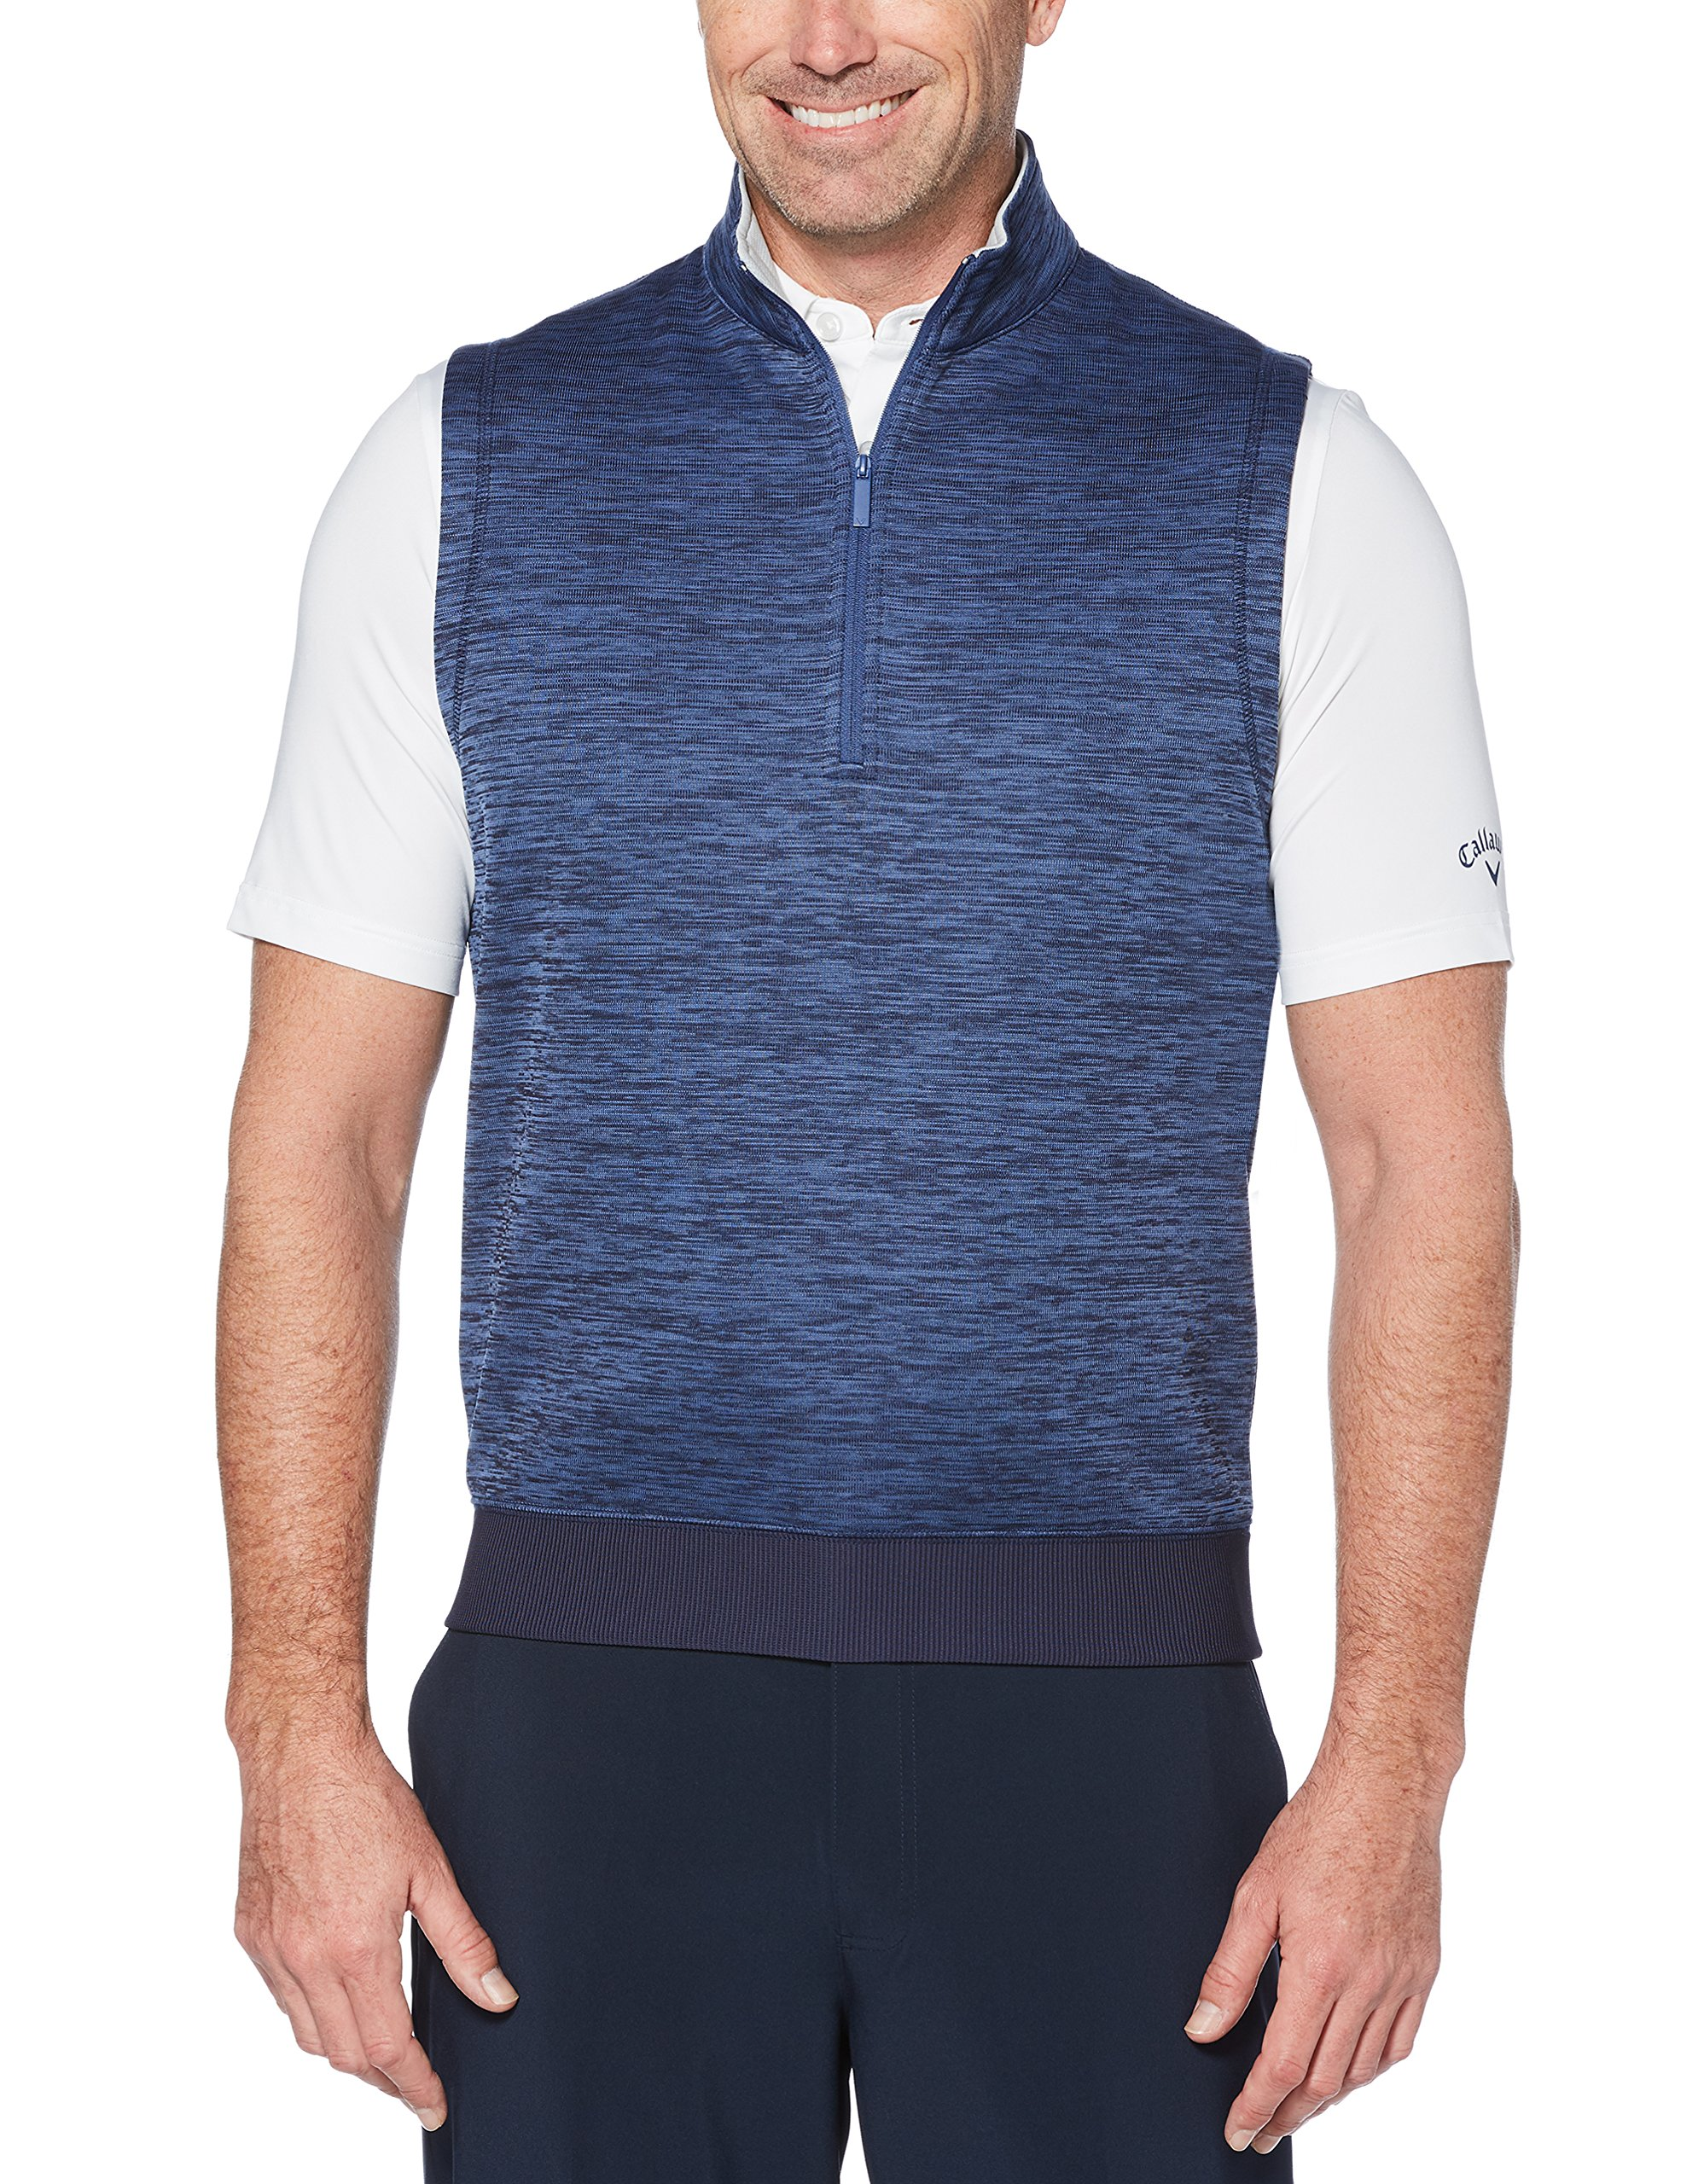 Callaway Men's Water Repellent 1/4 Zip Golf Vest, Peacoat Heather, 2X-Large by Callaway